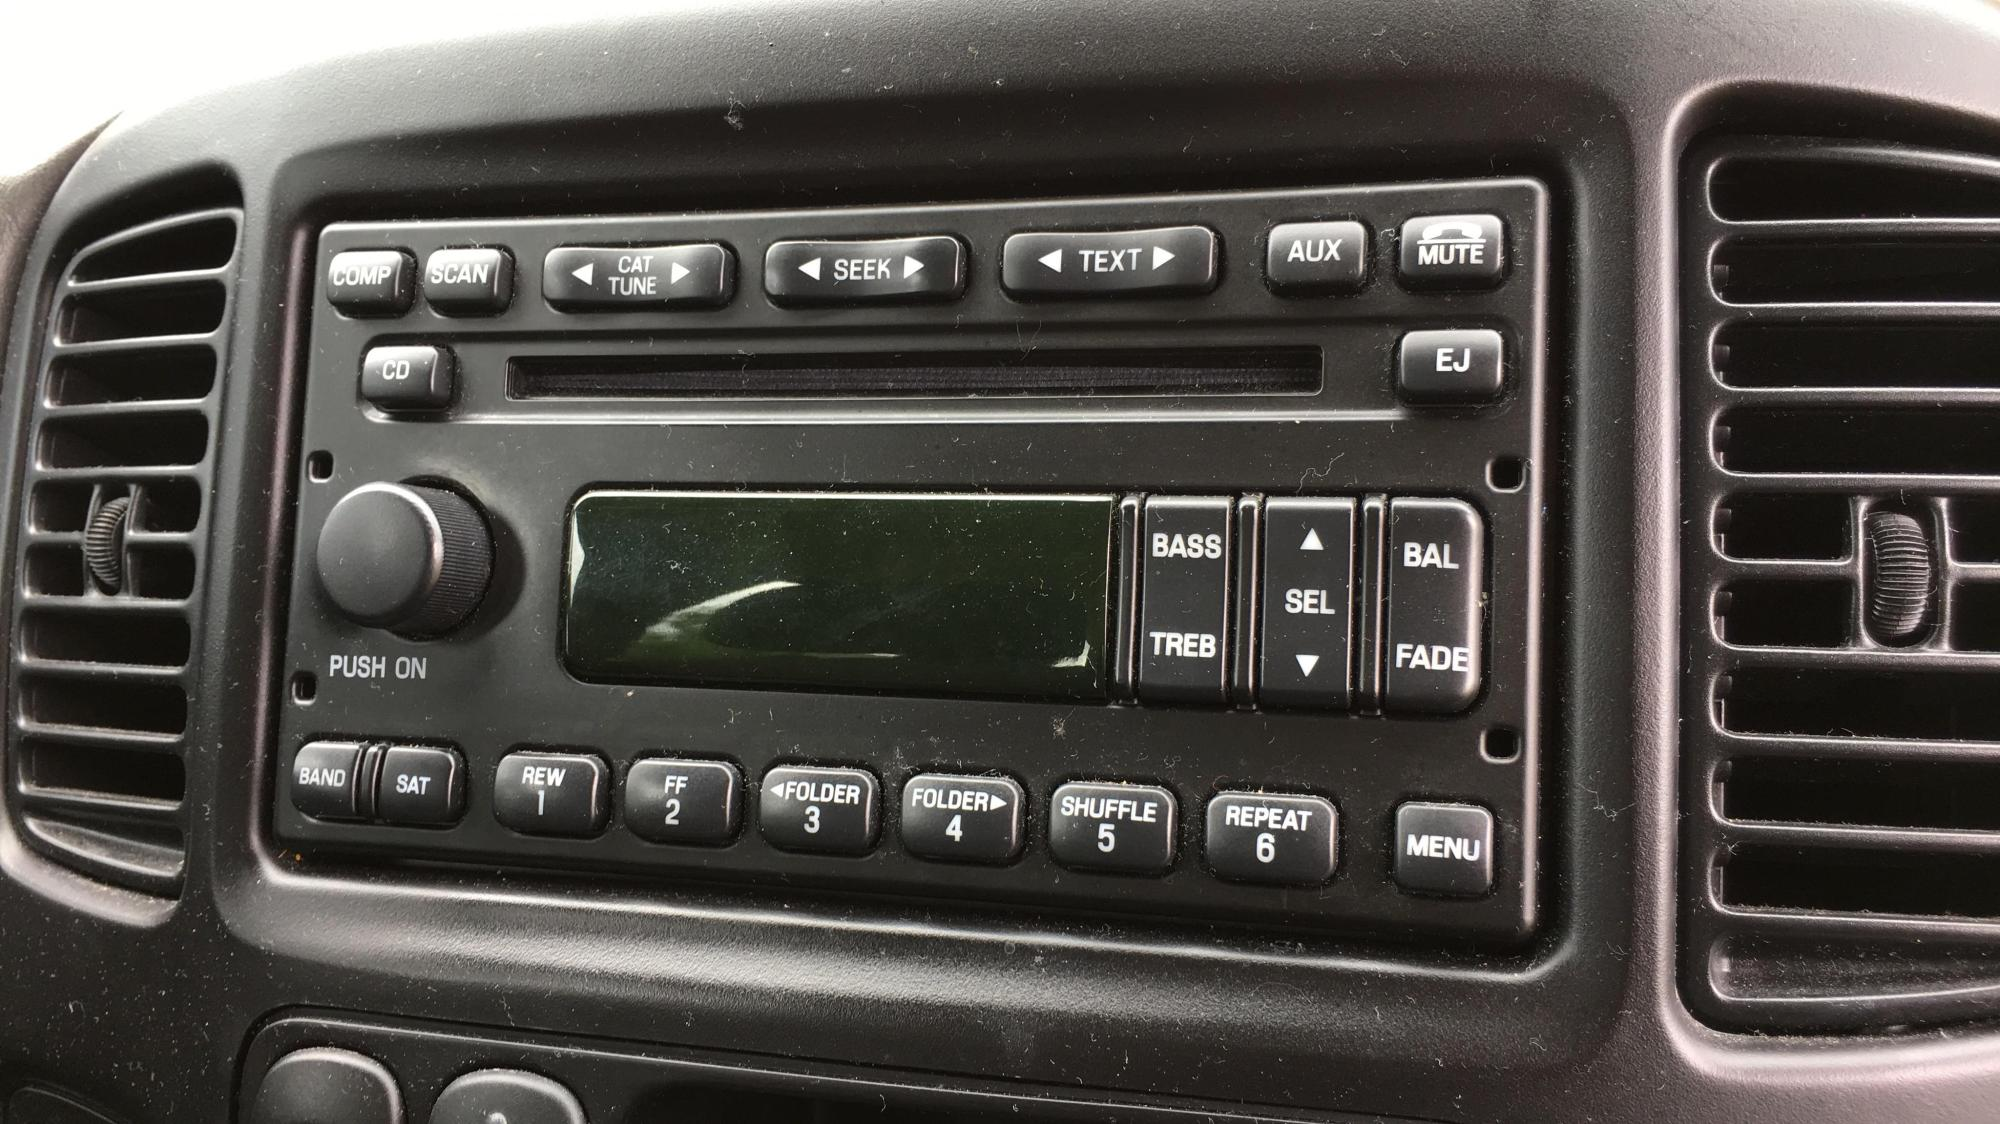 hight resolution of 2005 escape aux input where u at